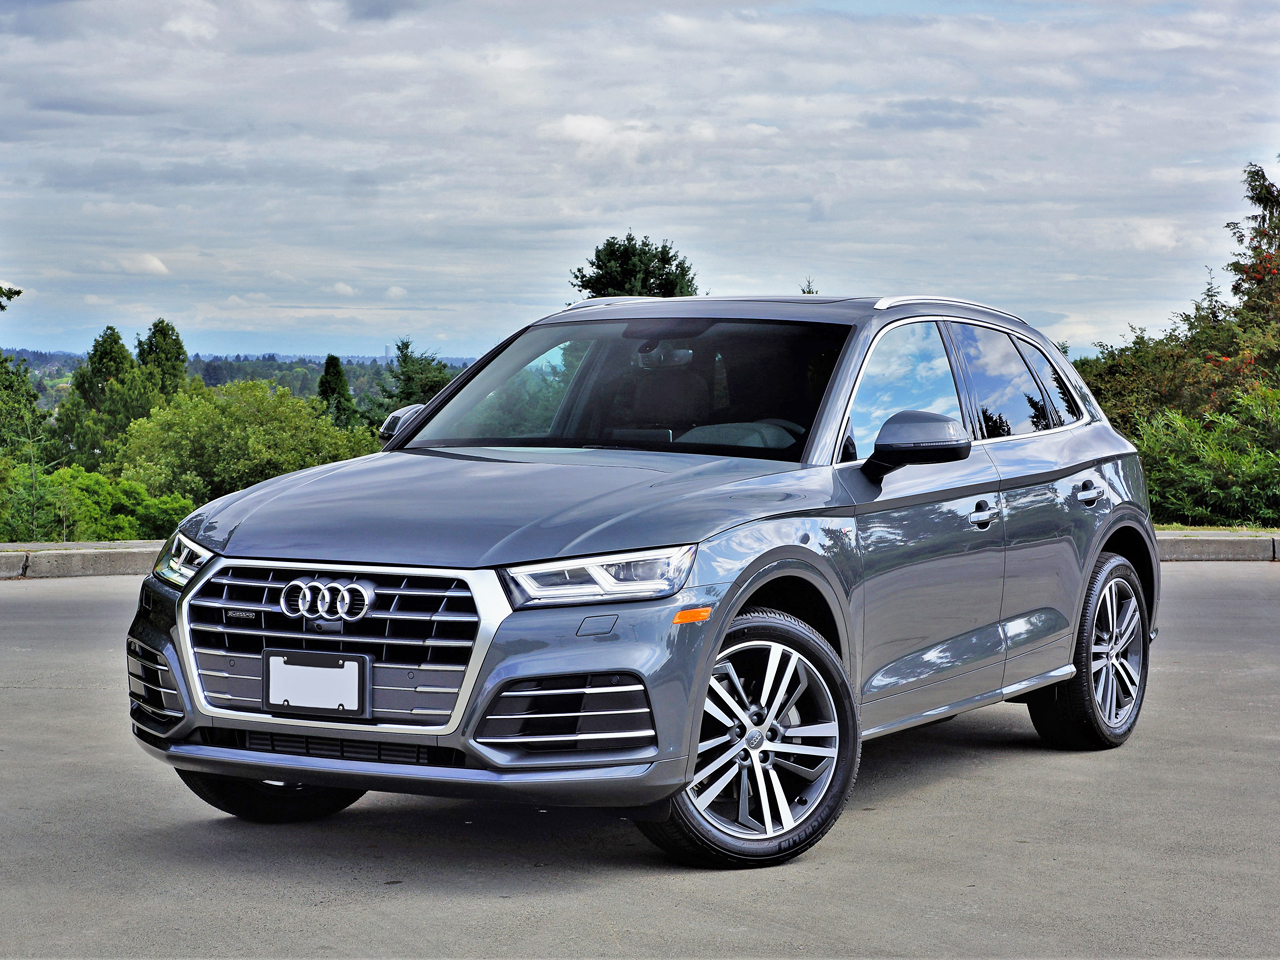 2013 audi q5 2.0 t premium plus review